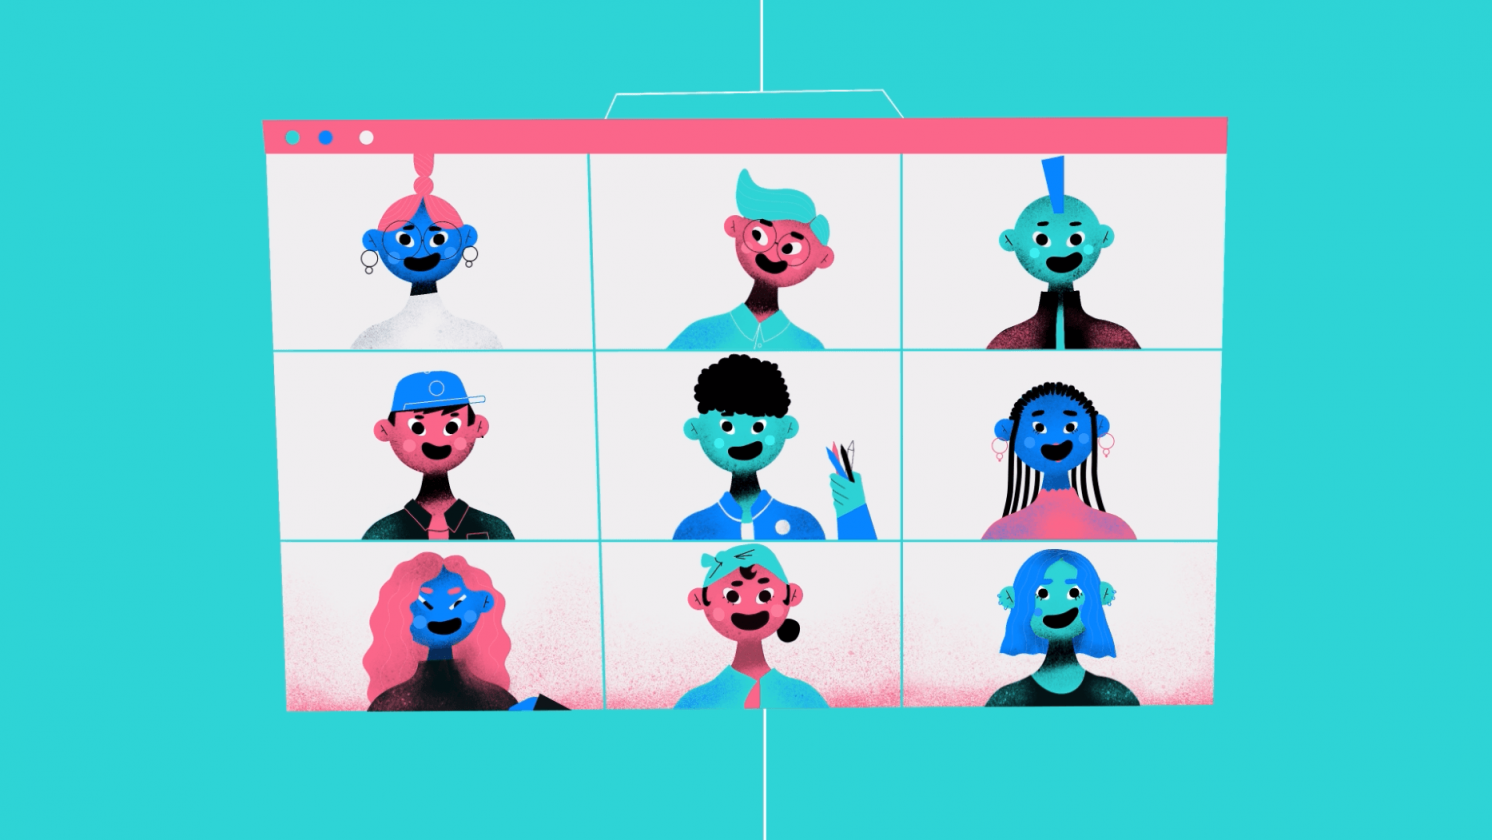 character animation of a group working online